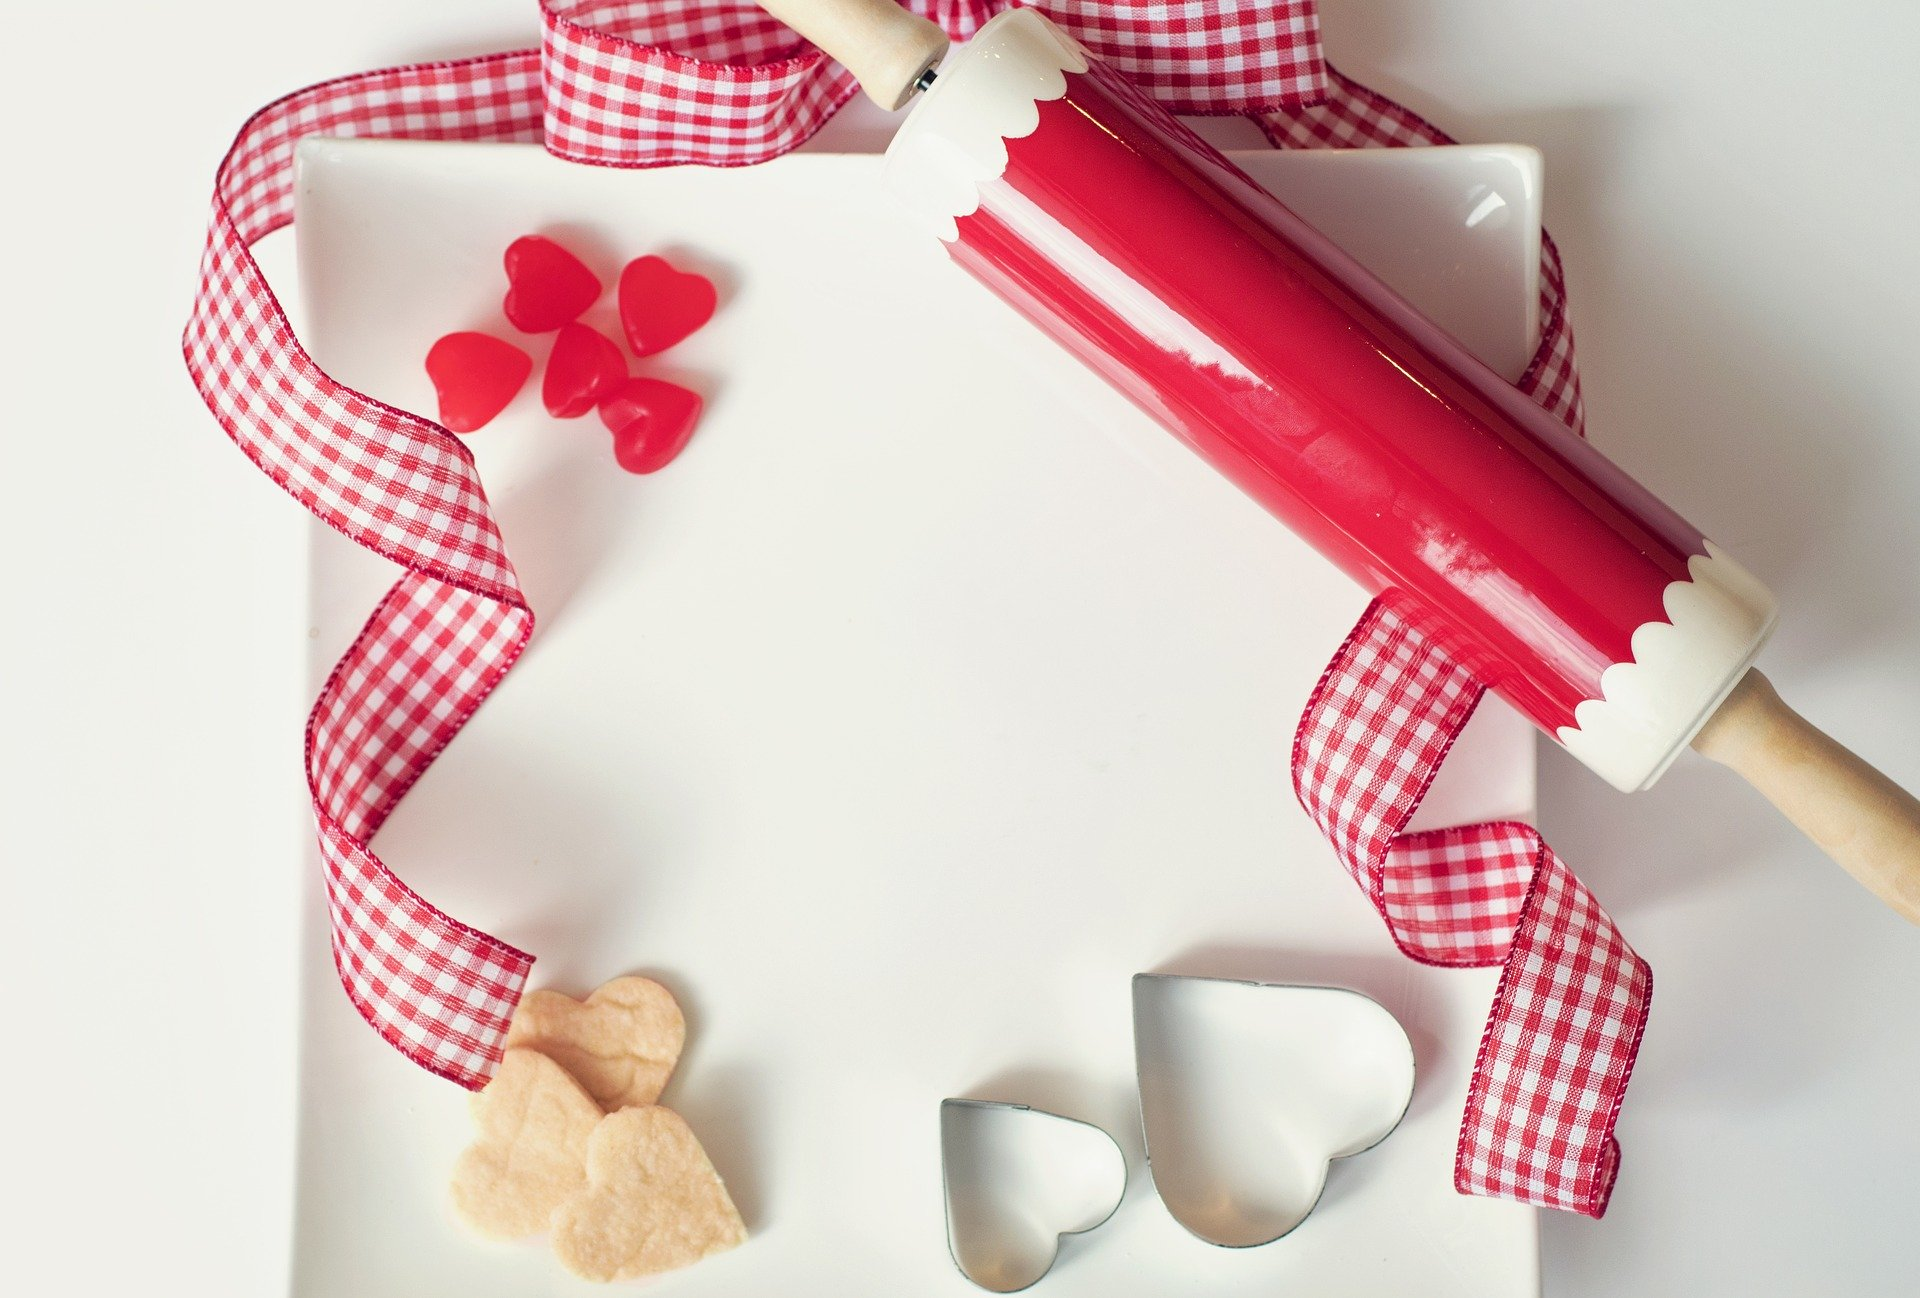 A red and white gingham ribbon on a plate, with a red and white rolling pin, heart shaped sweets, 2 heart cookie cutters and 3 hearts shaped cookies.